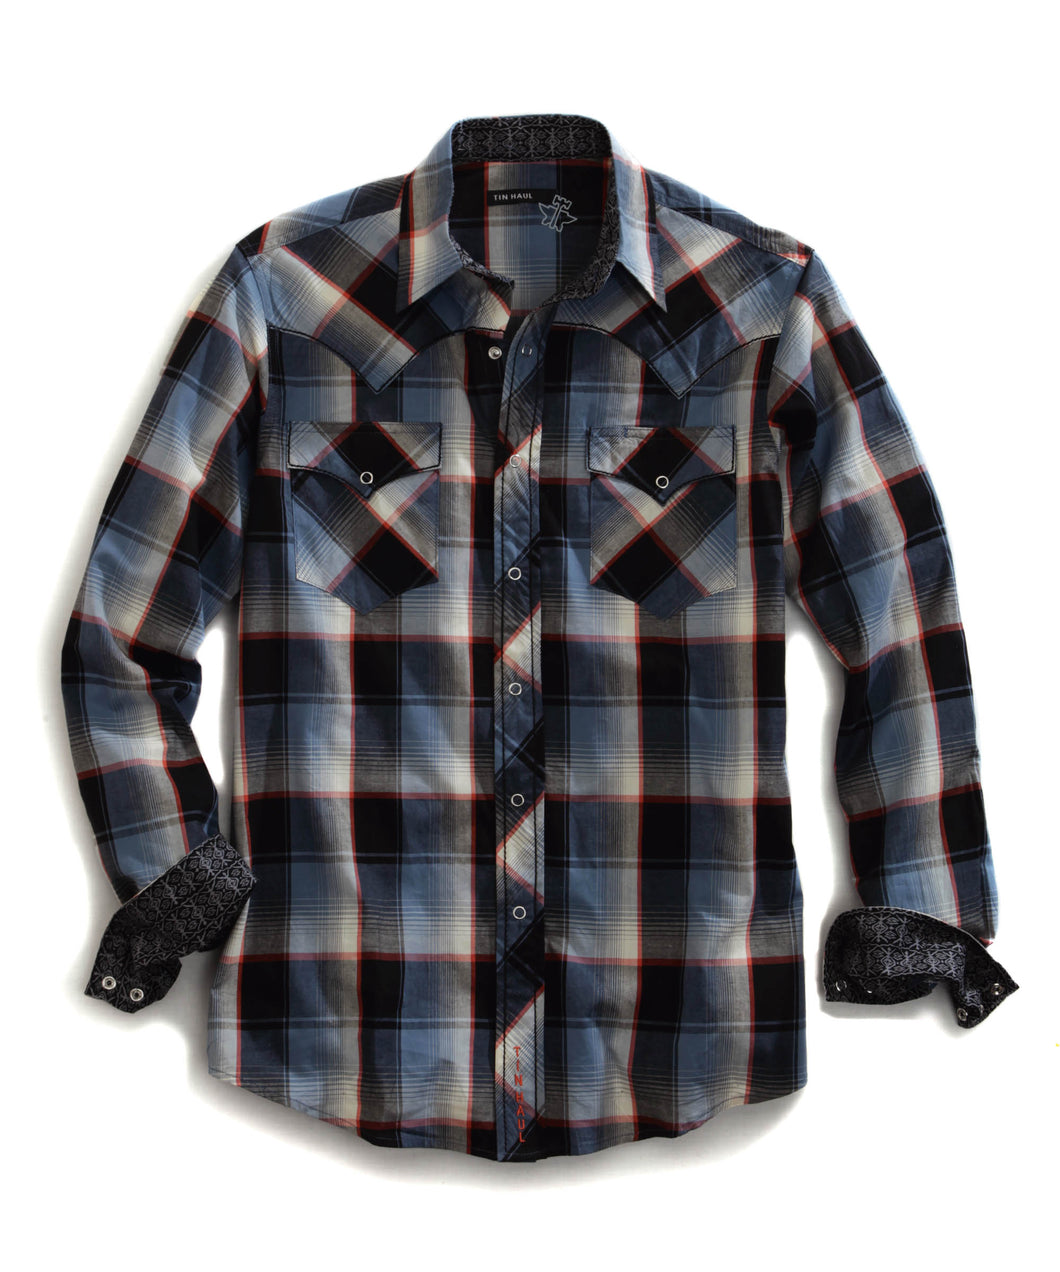 Tin Haul Collection Tinhaul Mens Long Sleeve Shirt 0729 Maui Plaid